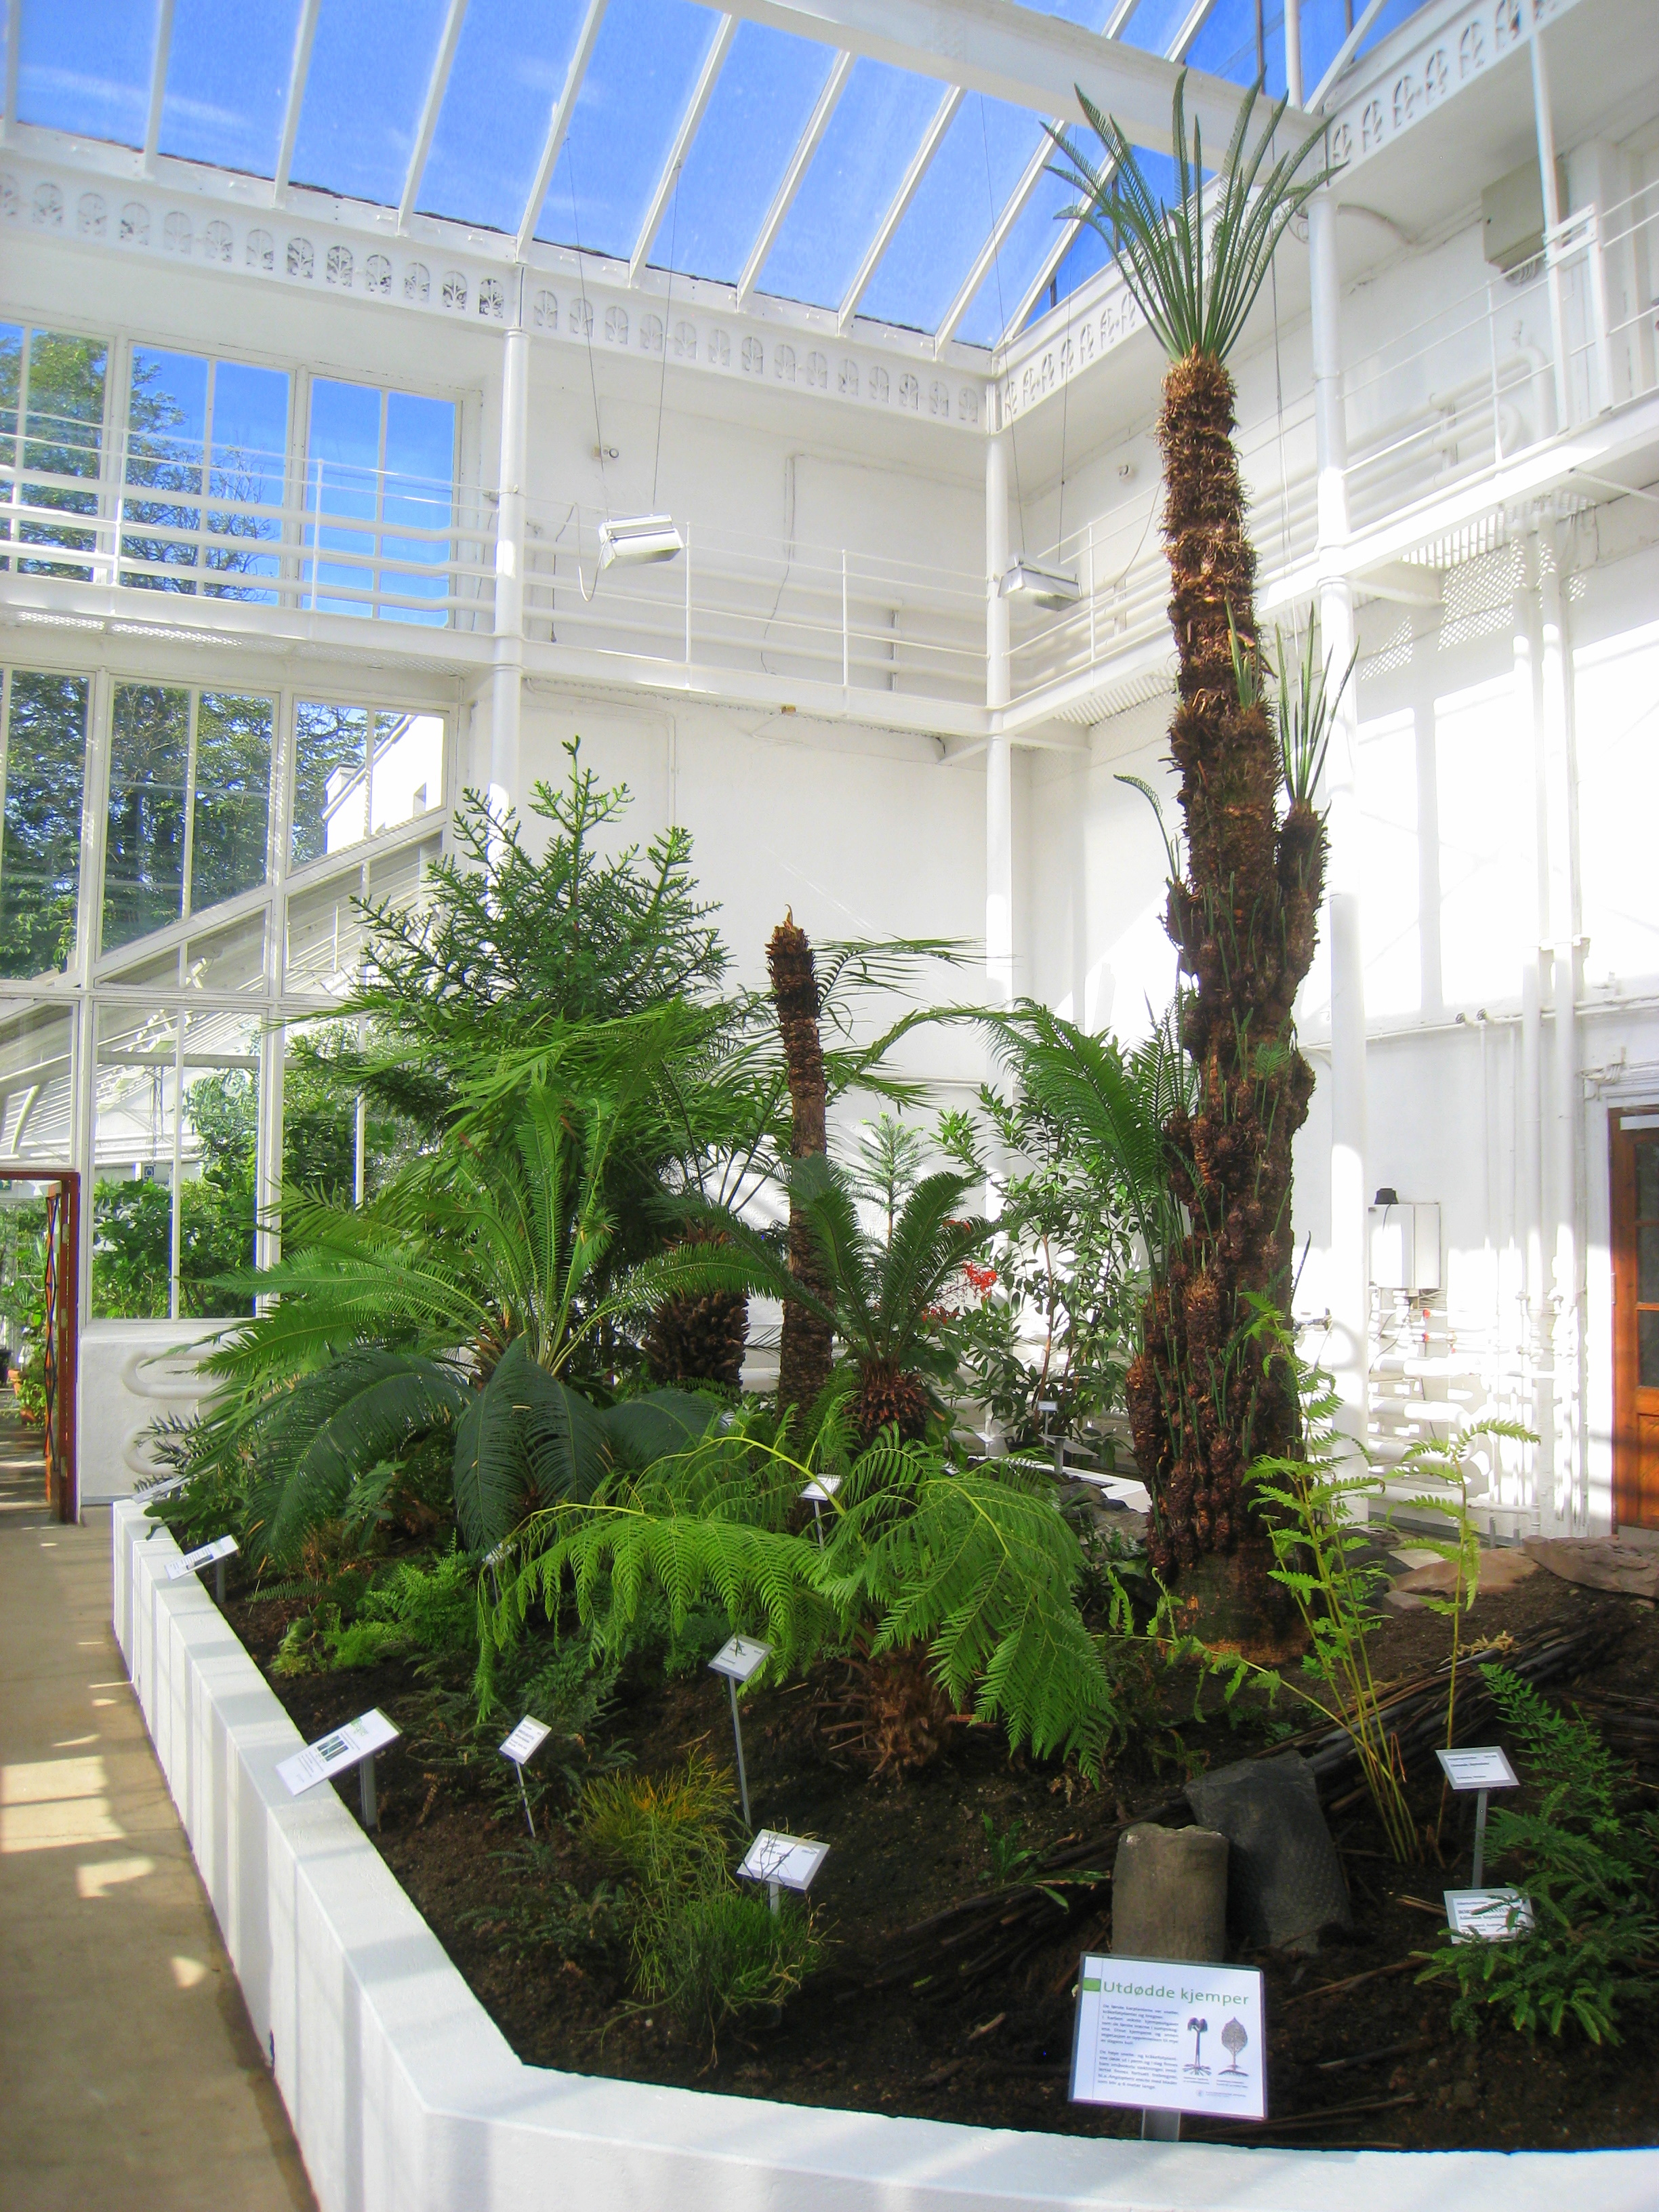 File:Palm house interior - Oslo Botanical Garden - IMG 9035.jpg ...